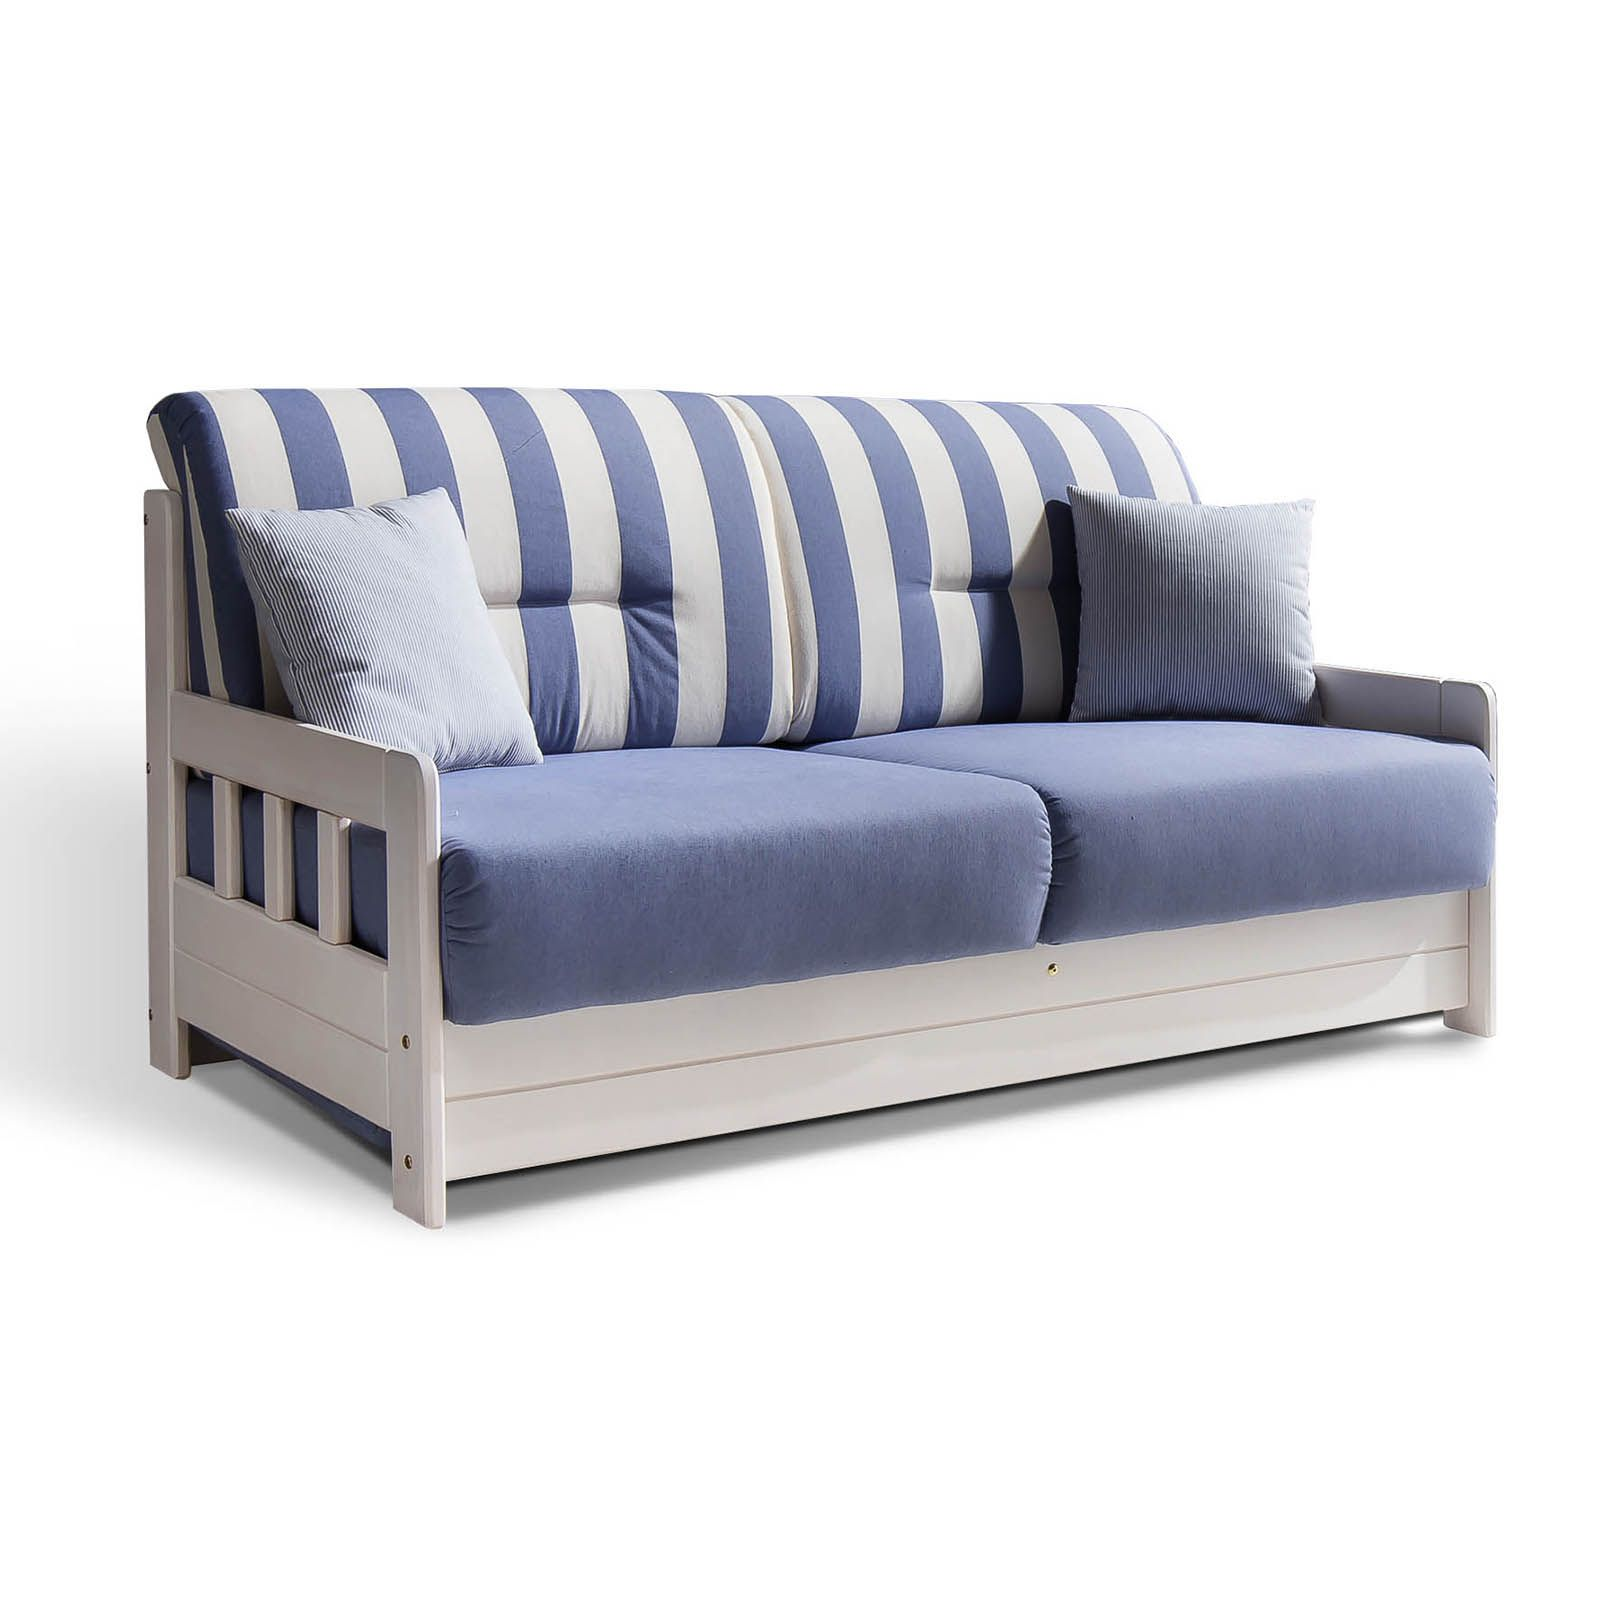 What Are Best Sofa Bed Features Sofa Couch Couch Sofa